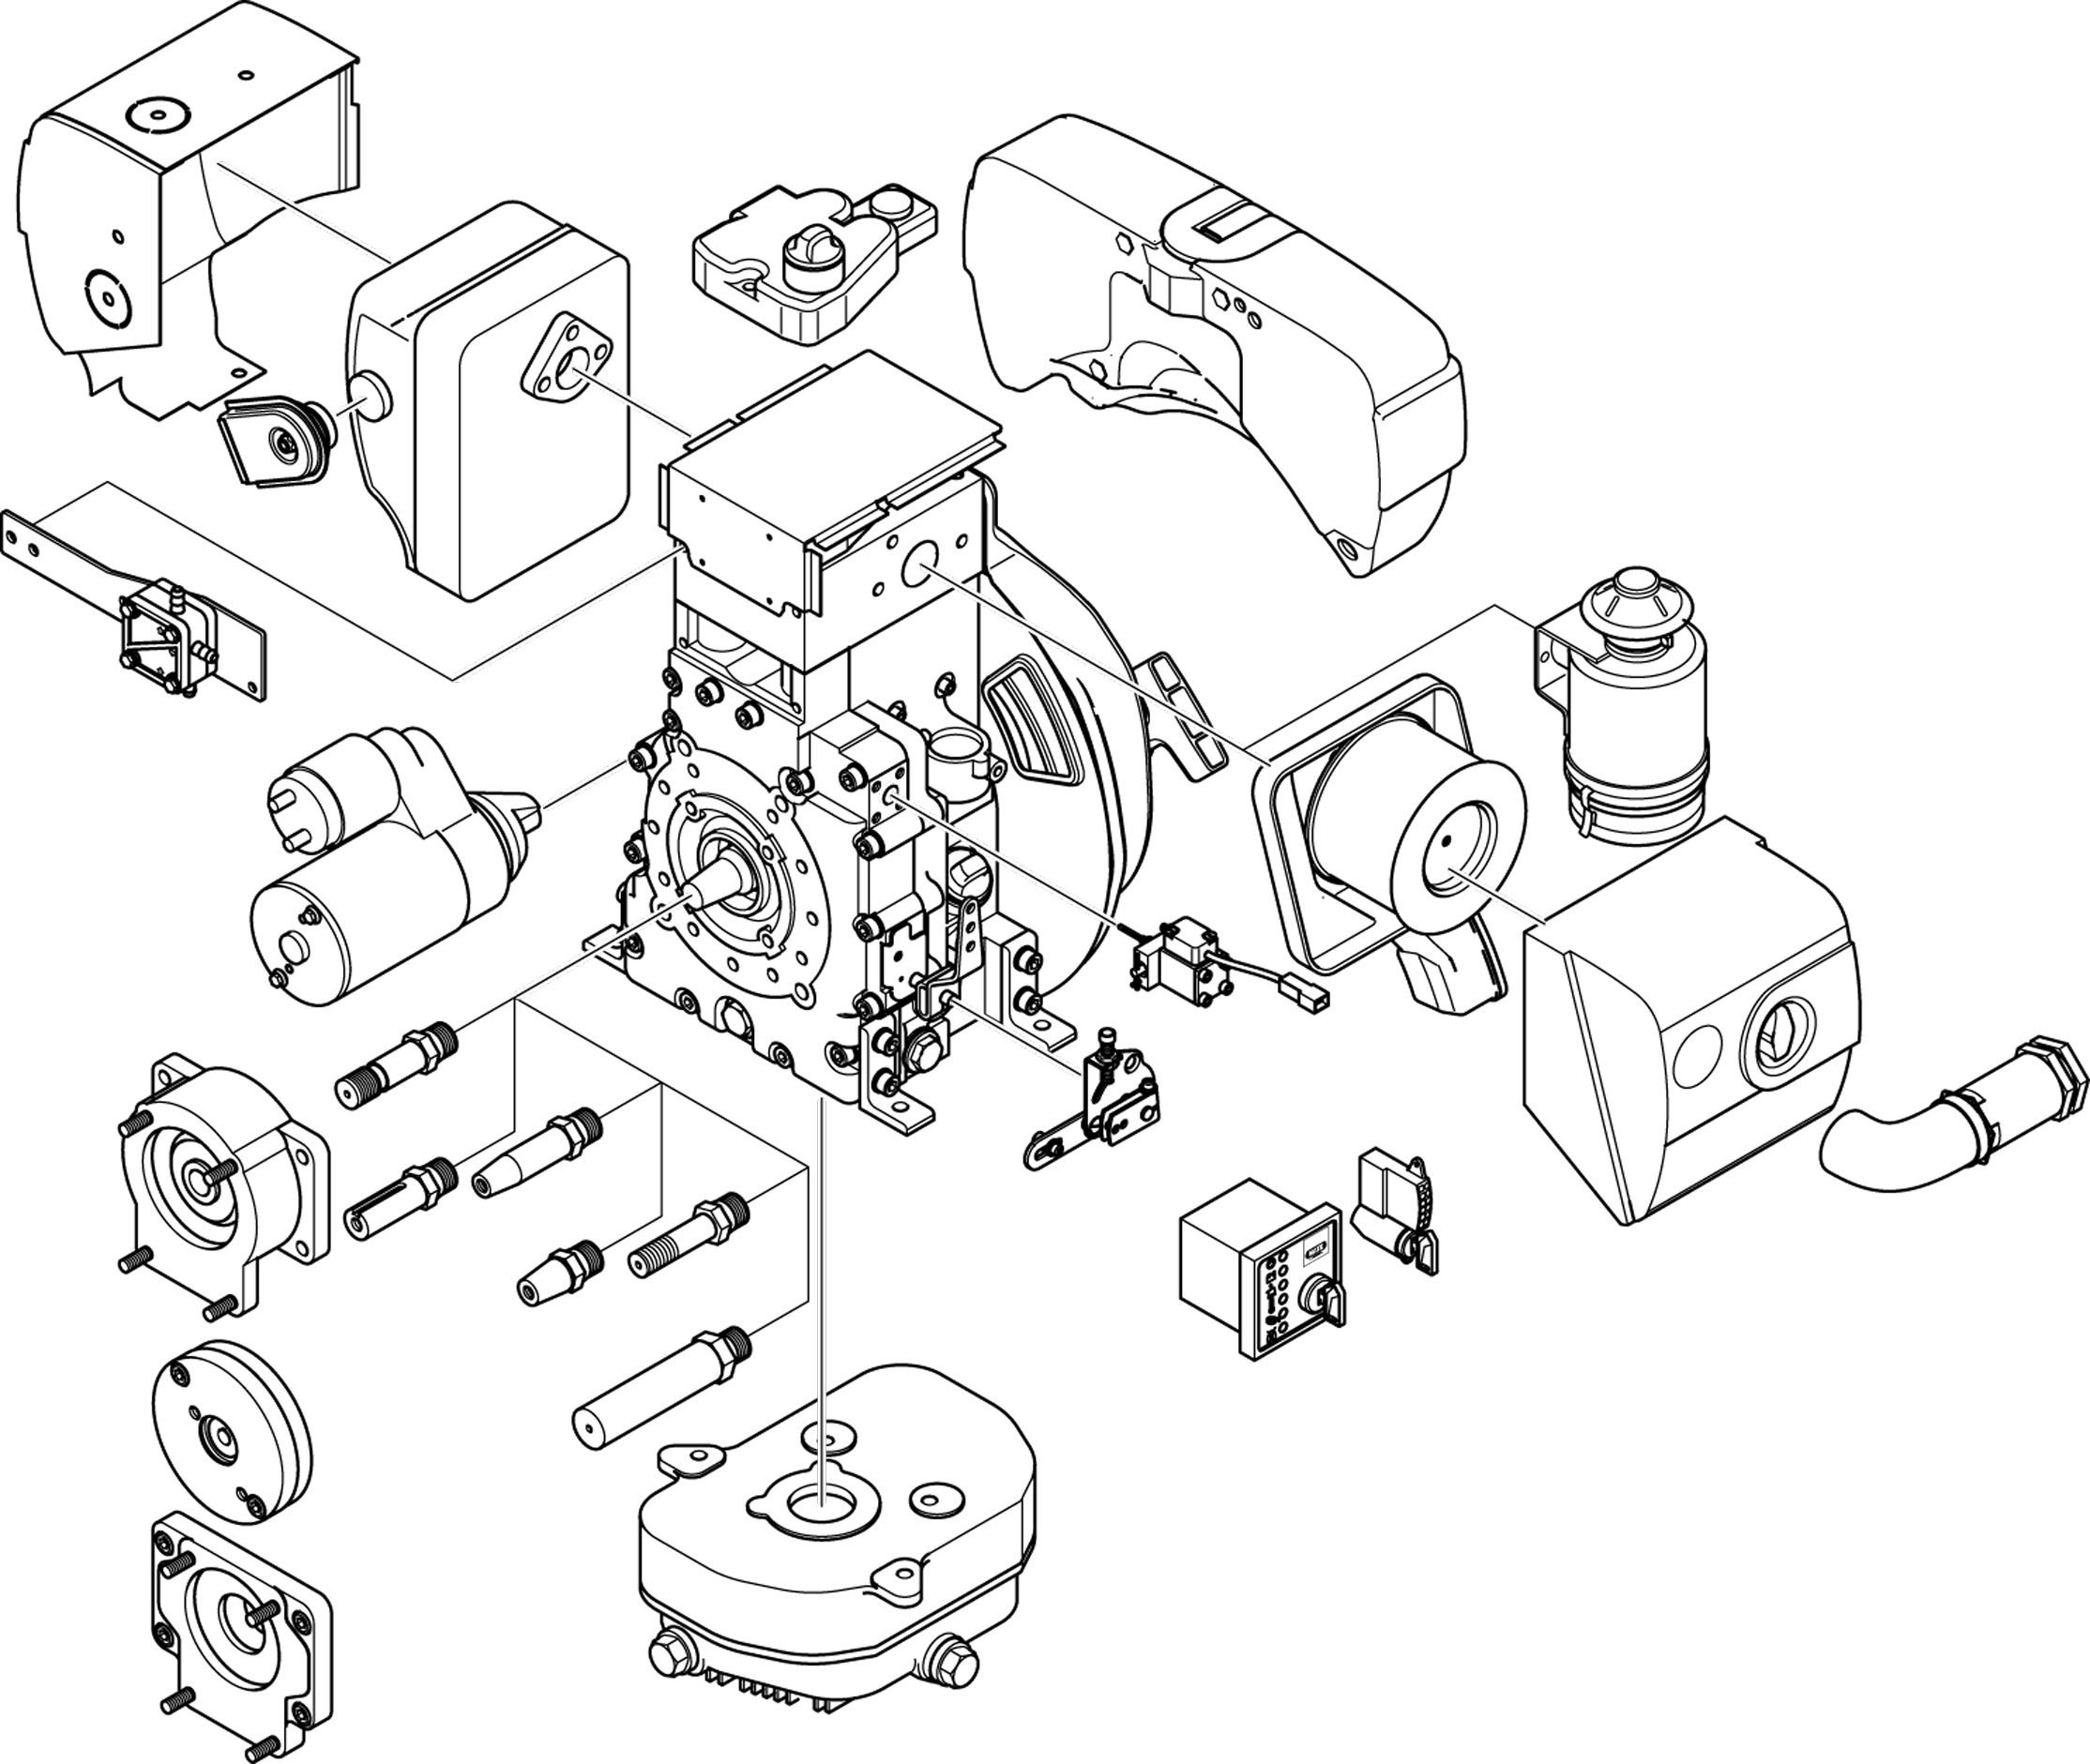 Hatz Engine Wiring Diagram | Wiring Schematic Diagram on